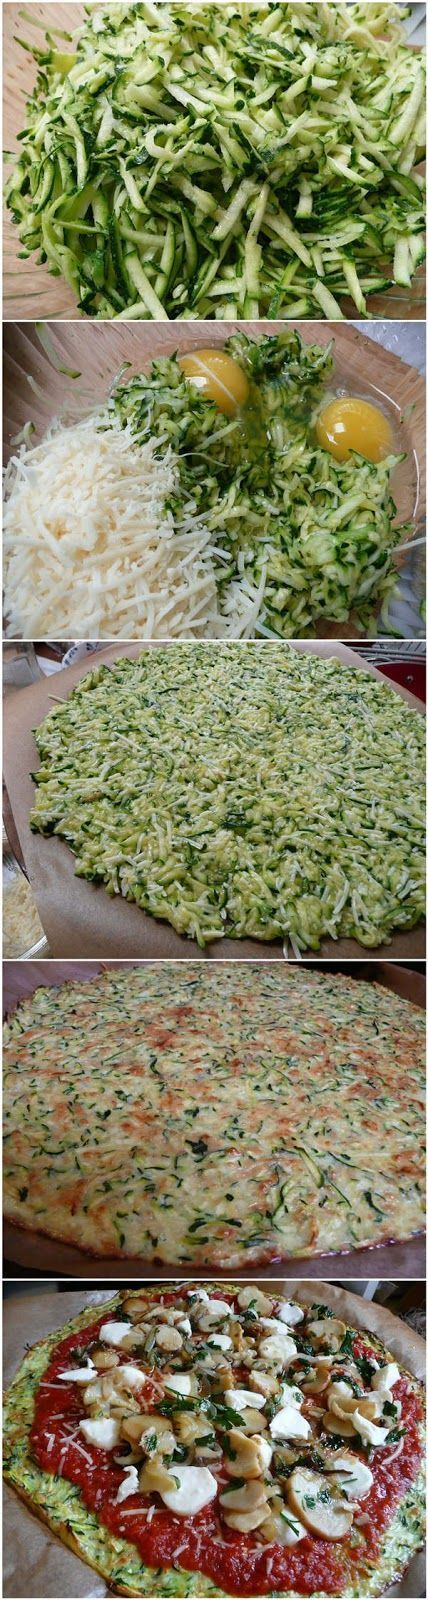 Low Carb Zucchini Crust Pizza #healthy #lowcarb #pizza